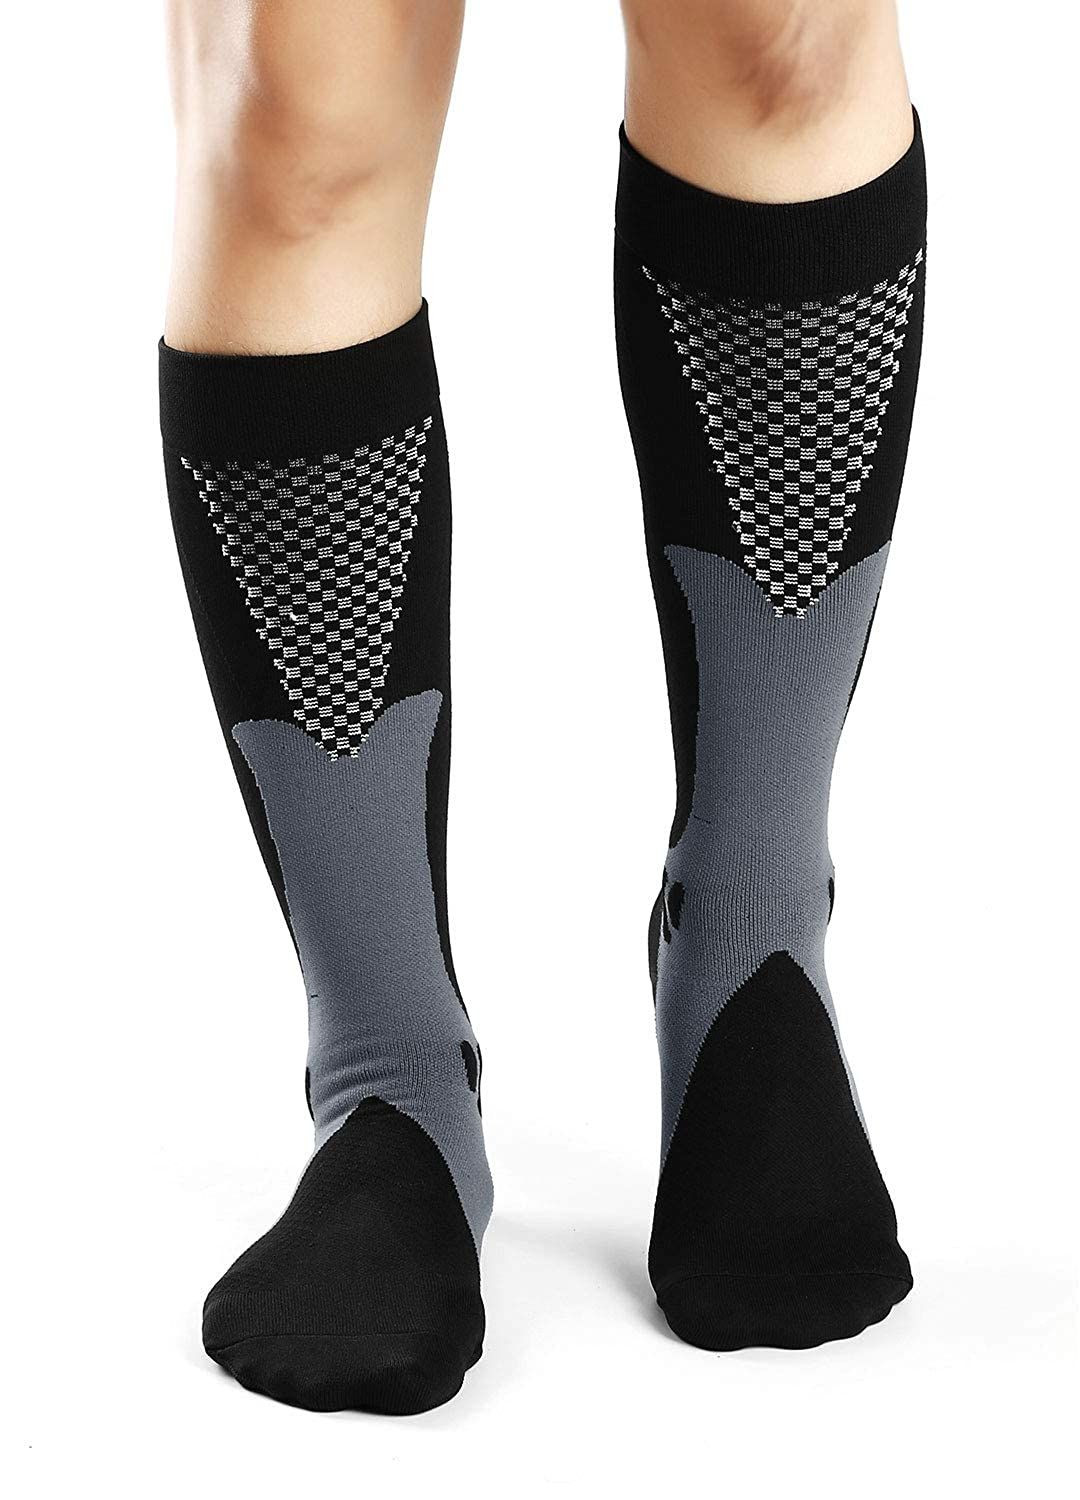 3 Pairs 15-25 mmHg Compression Socks for Men Athletic Fit for Running,Basketball,Soccer,Traveling,Nurses